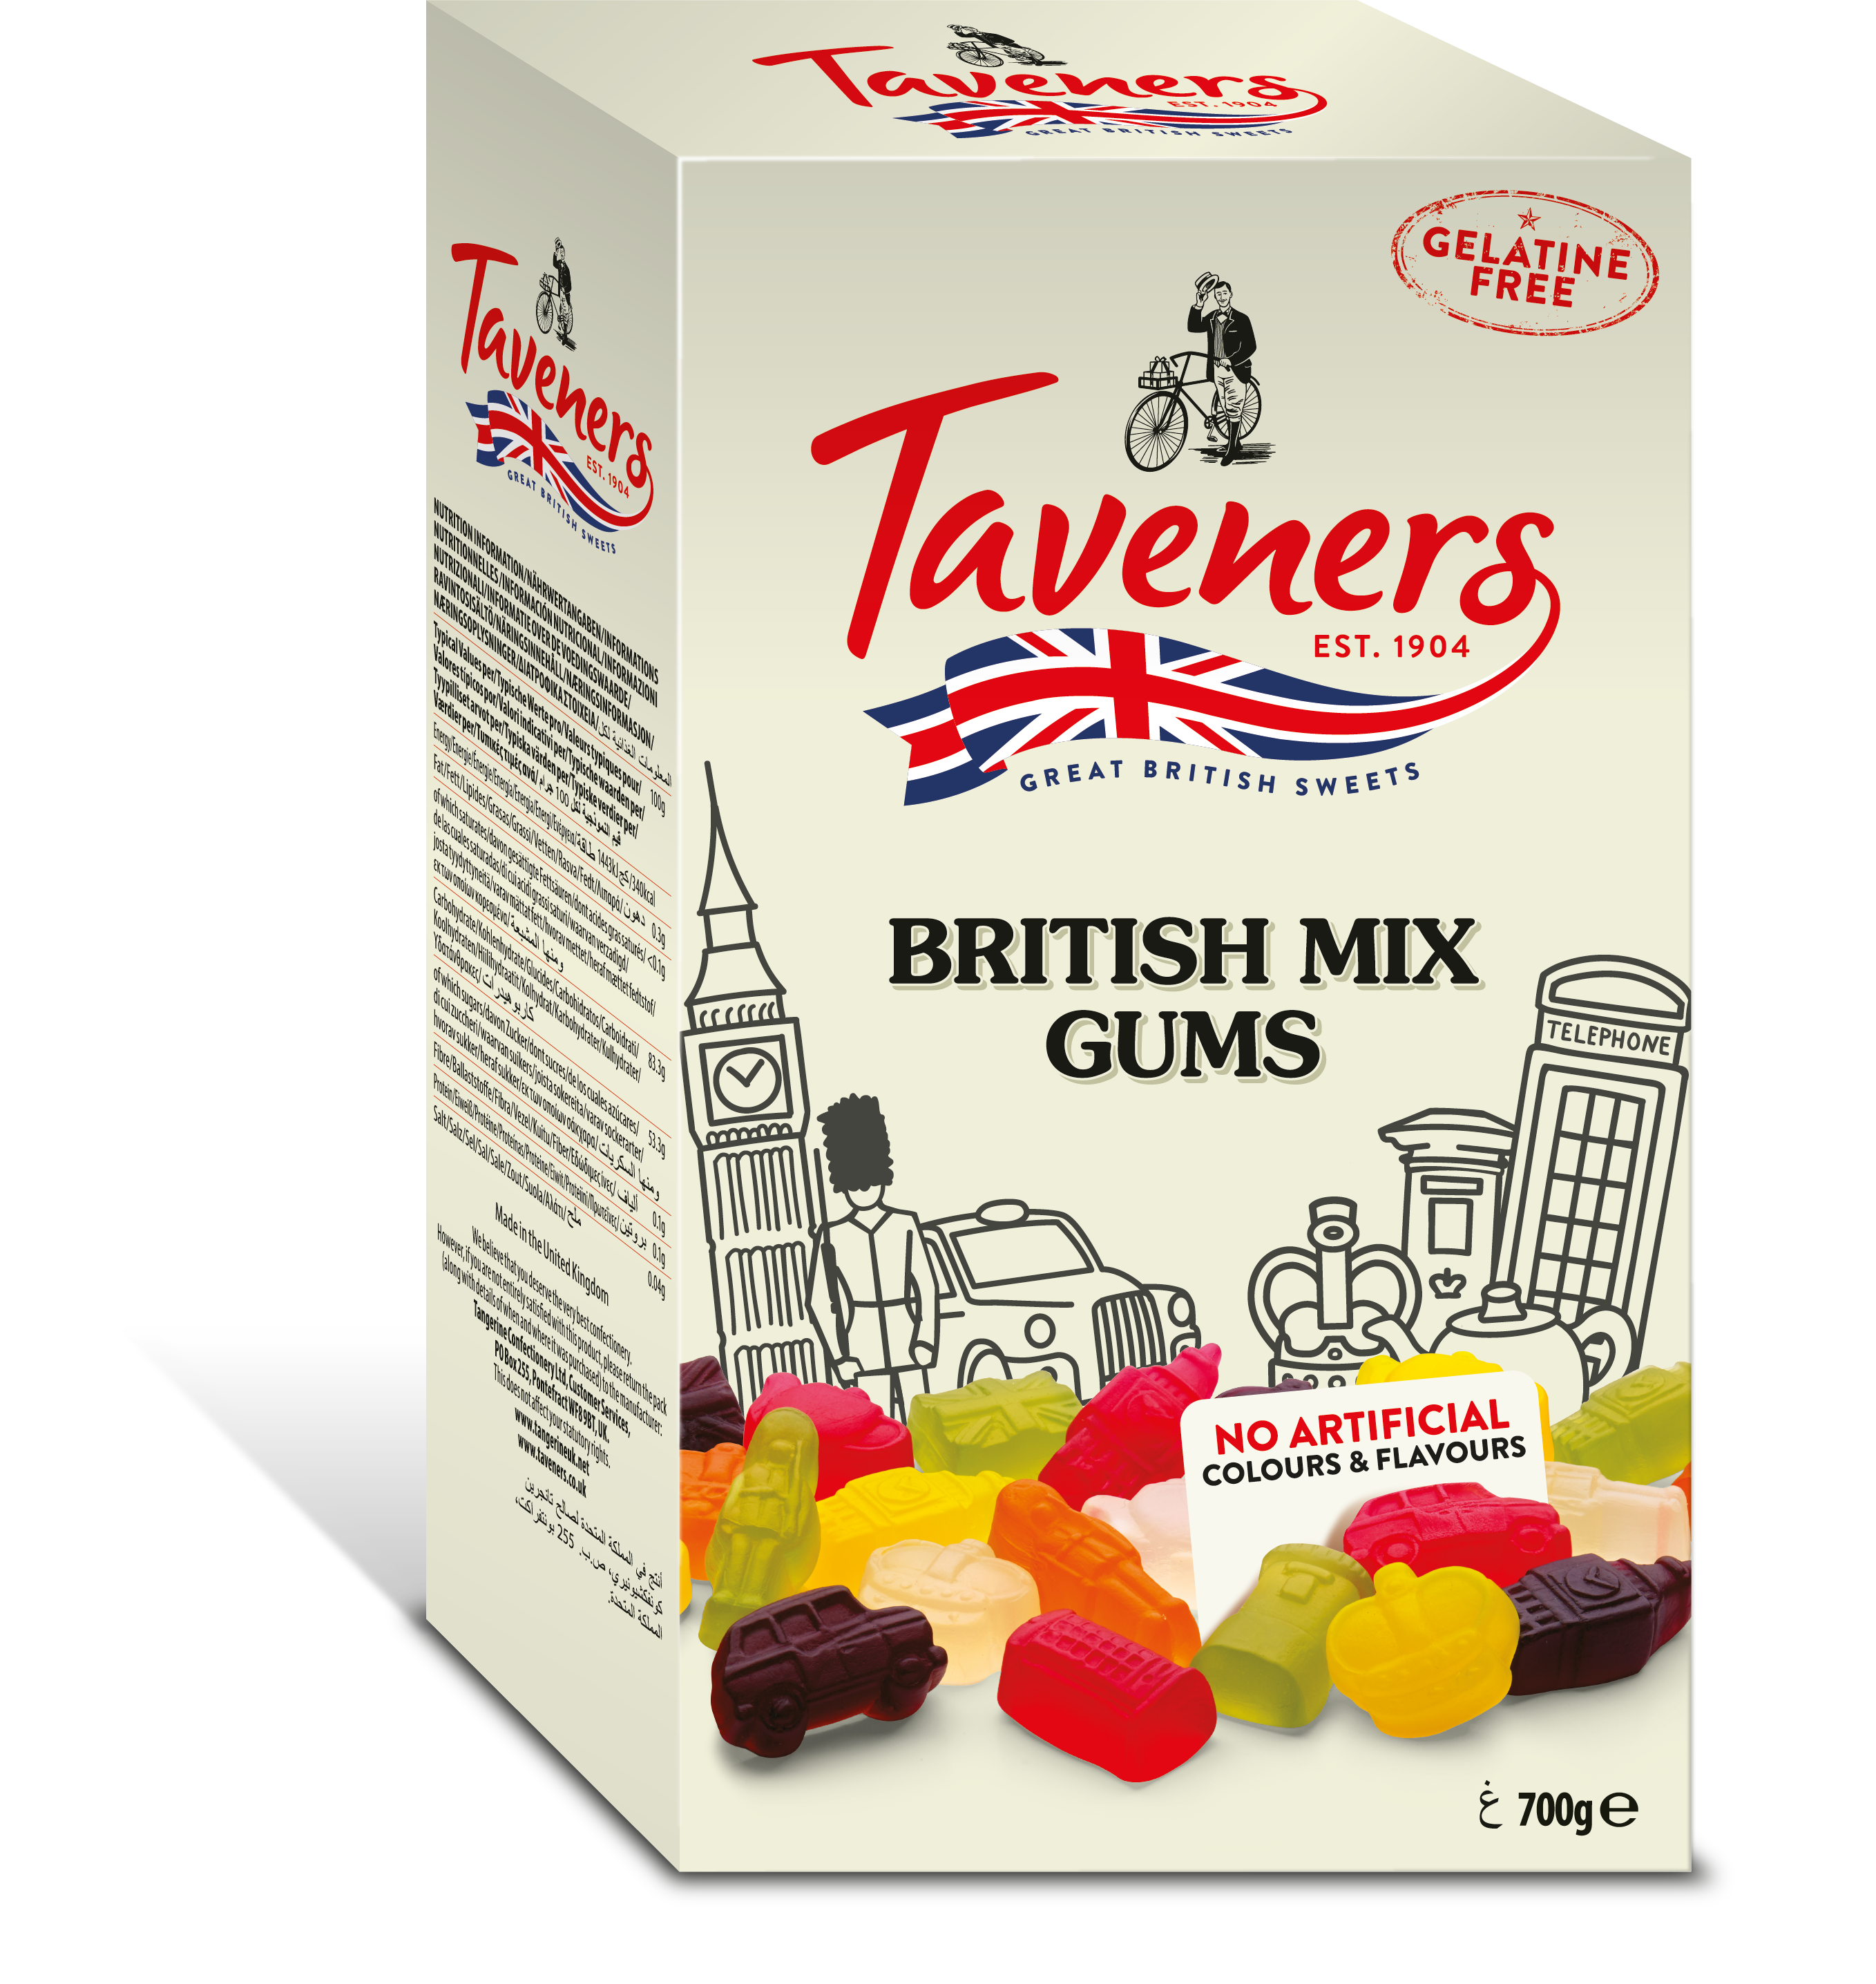 British Mix Gums